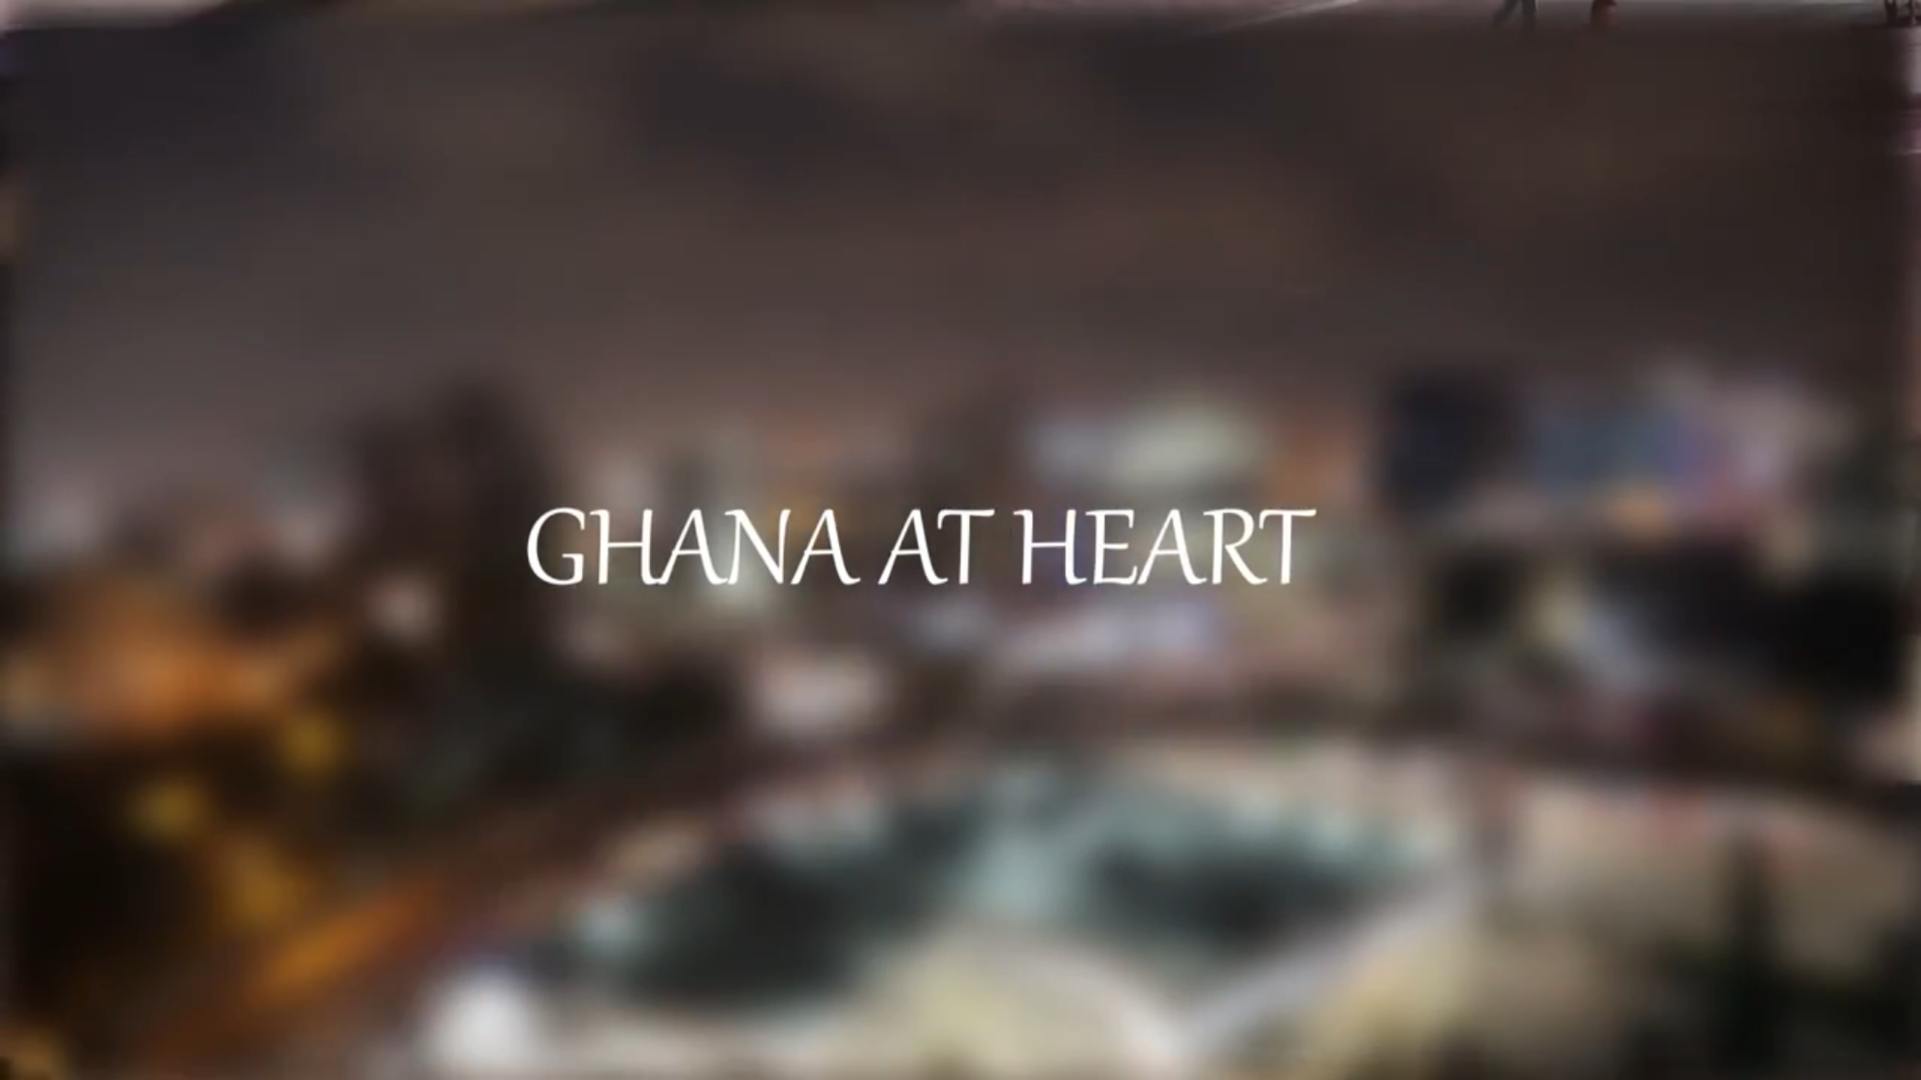 Introducing Ghana - Ghana at Heart